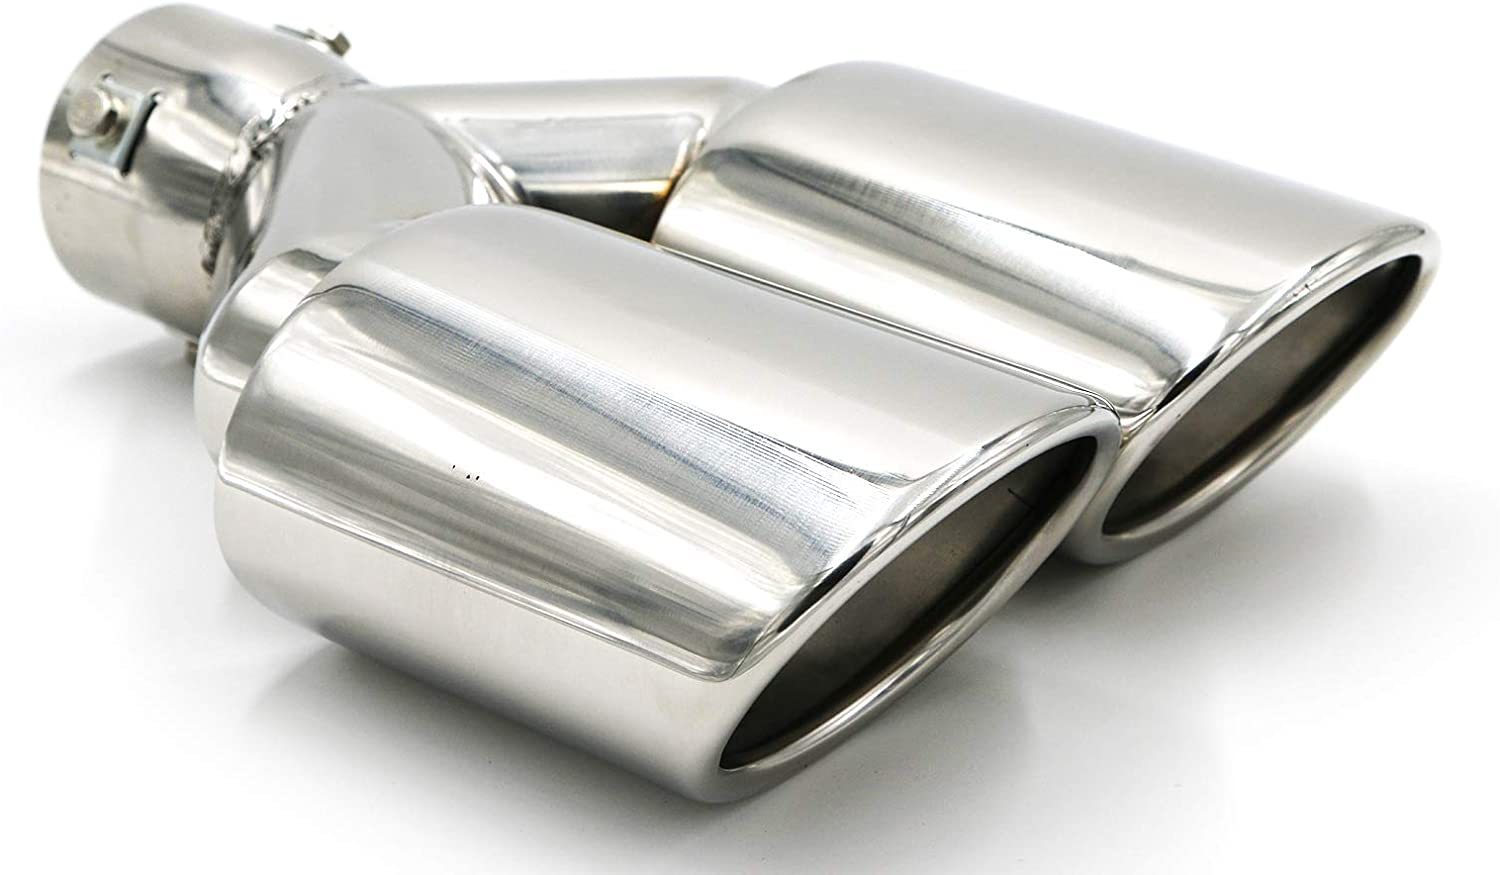 X9.5 EXT46 2.4X2 Fit for 2.5 Inch Inlet 2x2.4 Outlet 9.5 Overall Length Stainless Steel Clamp on Dual Exhaust Tip Tailpipe Duo Layer 2.5X RP Remarkable Power